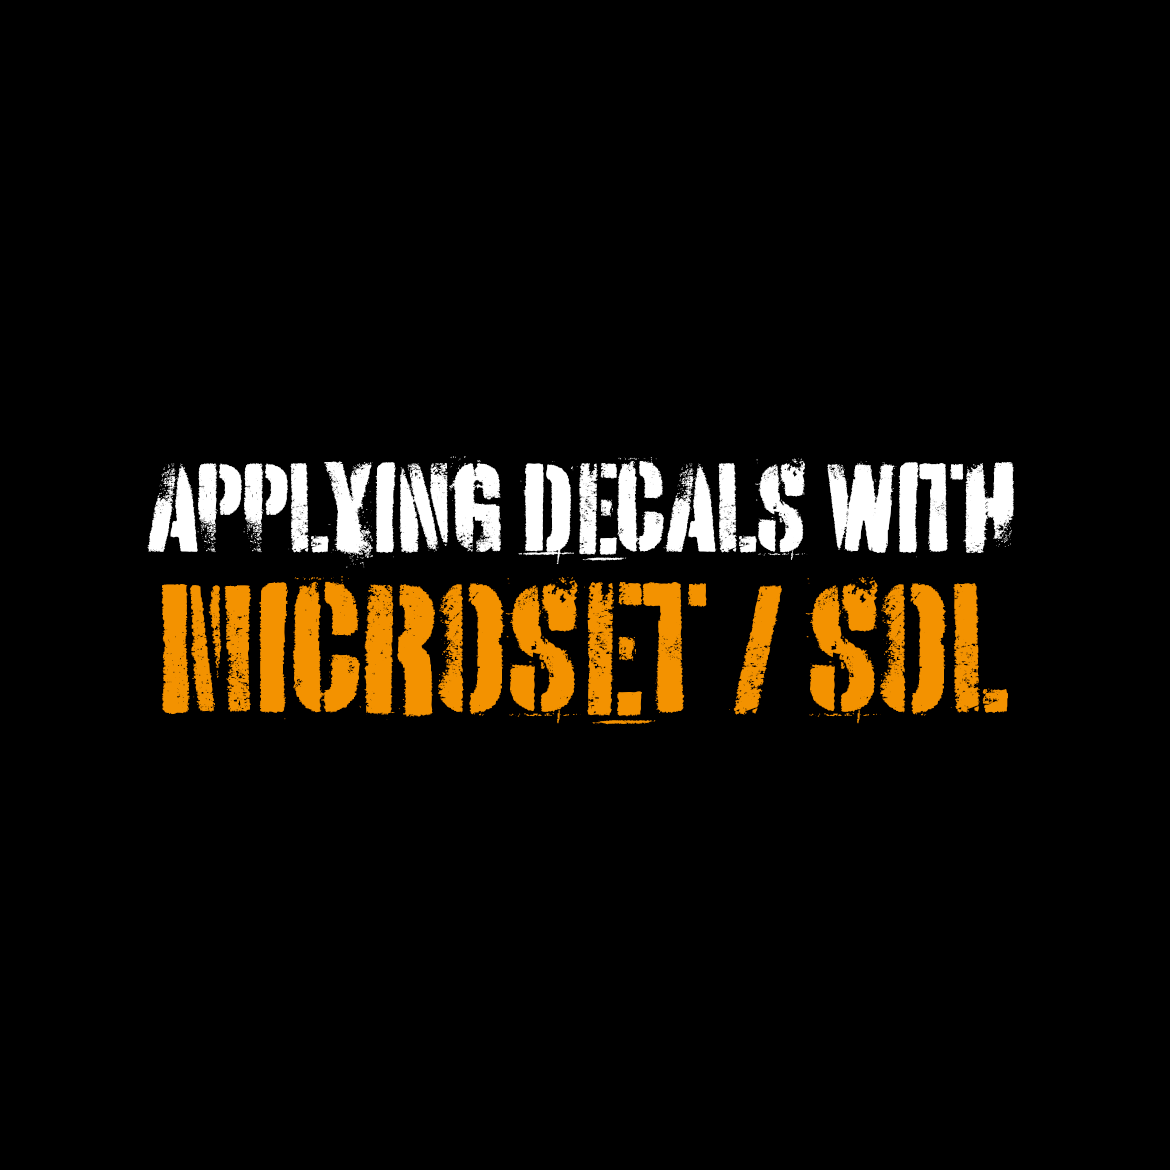 How to apply decals with Microset and Microsol